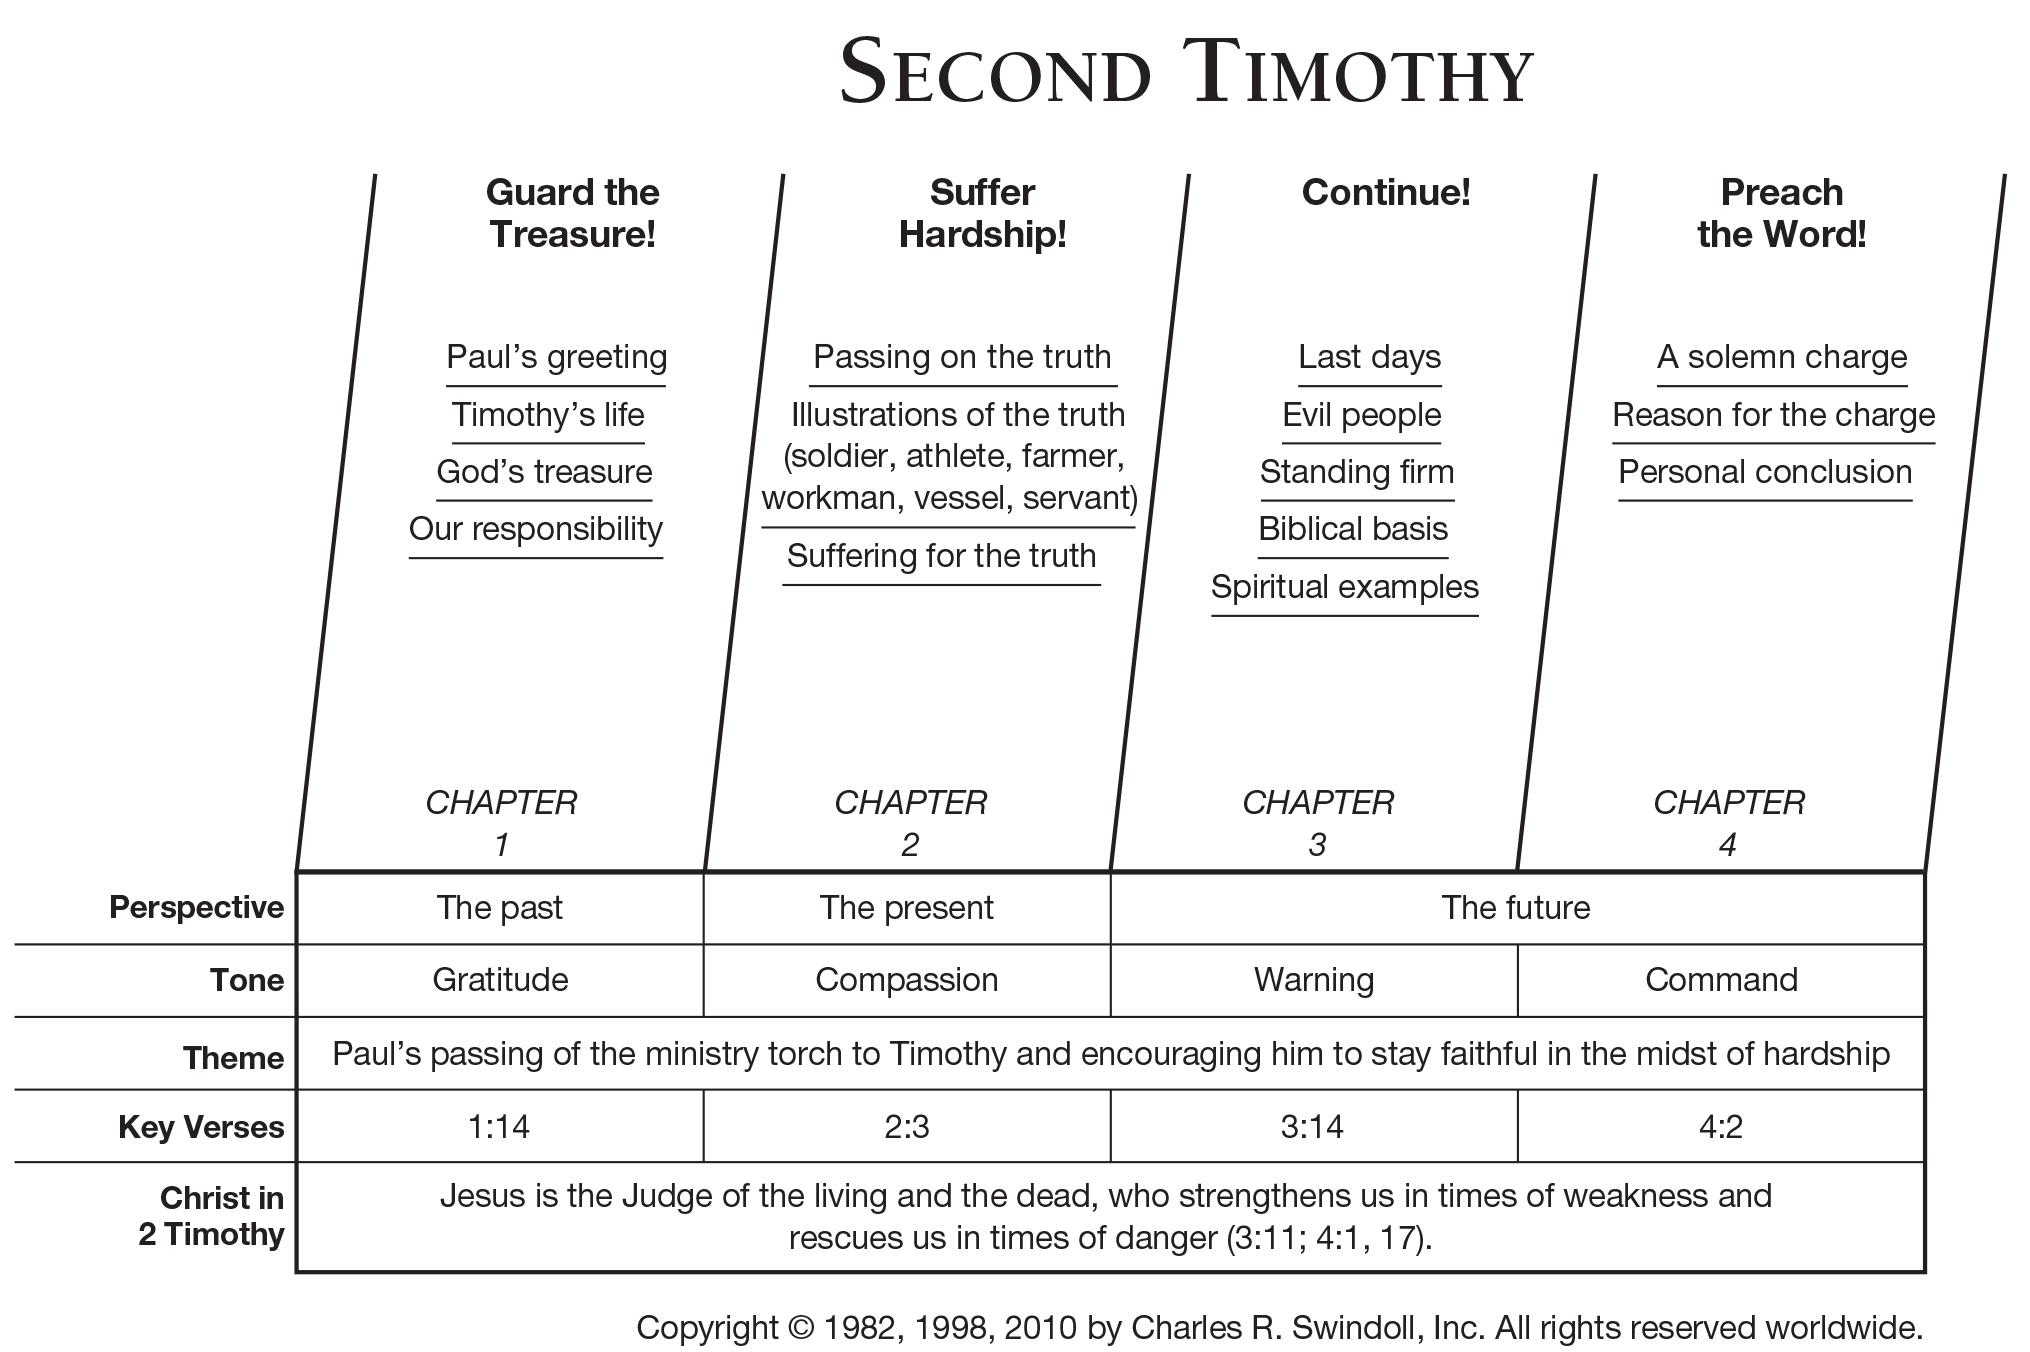 Book of Second Timothy Overview - Insight for Living Ministries